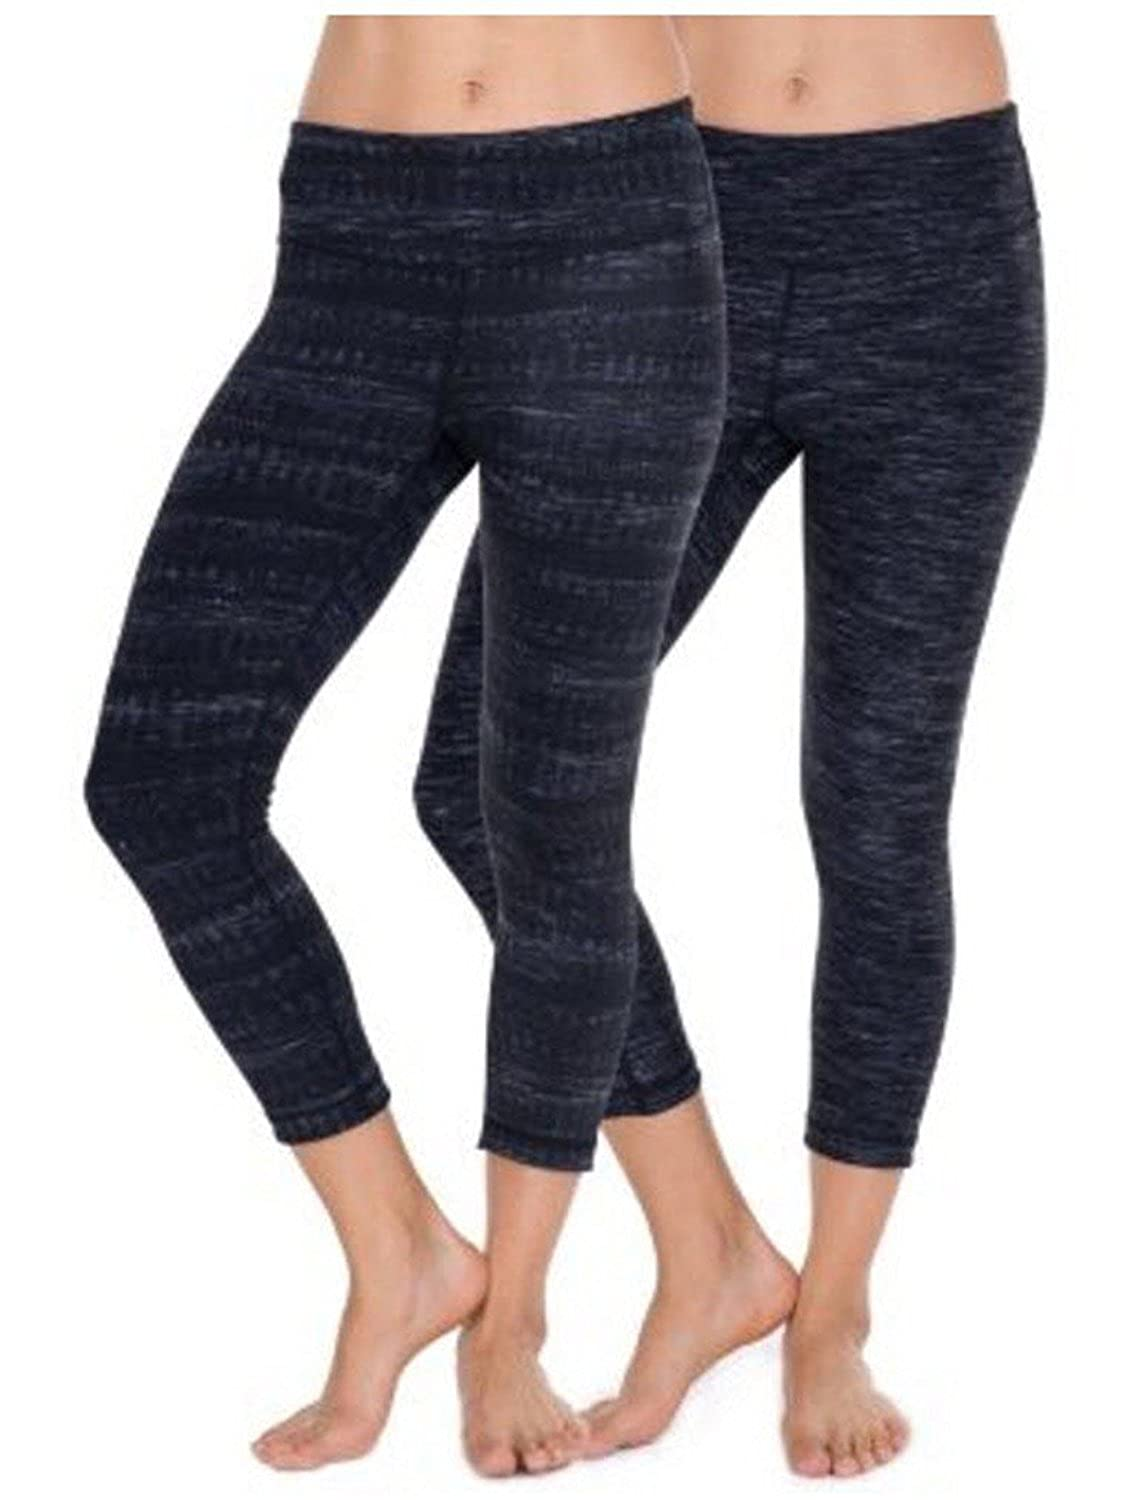 727d9830573346 Active Life 90° by Reflex Ladies Performance Athletic Capri Pants Lightning  Gray (XL) at Amazon Women's Clothing store: